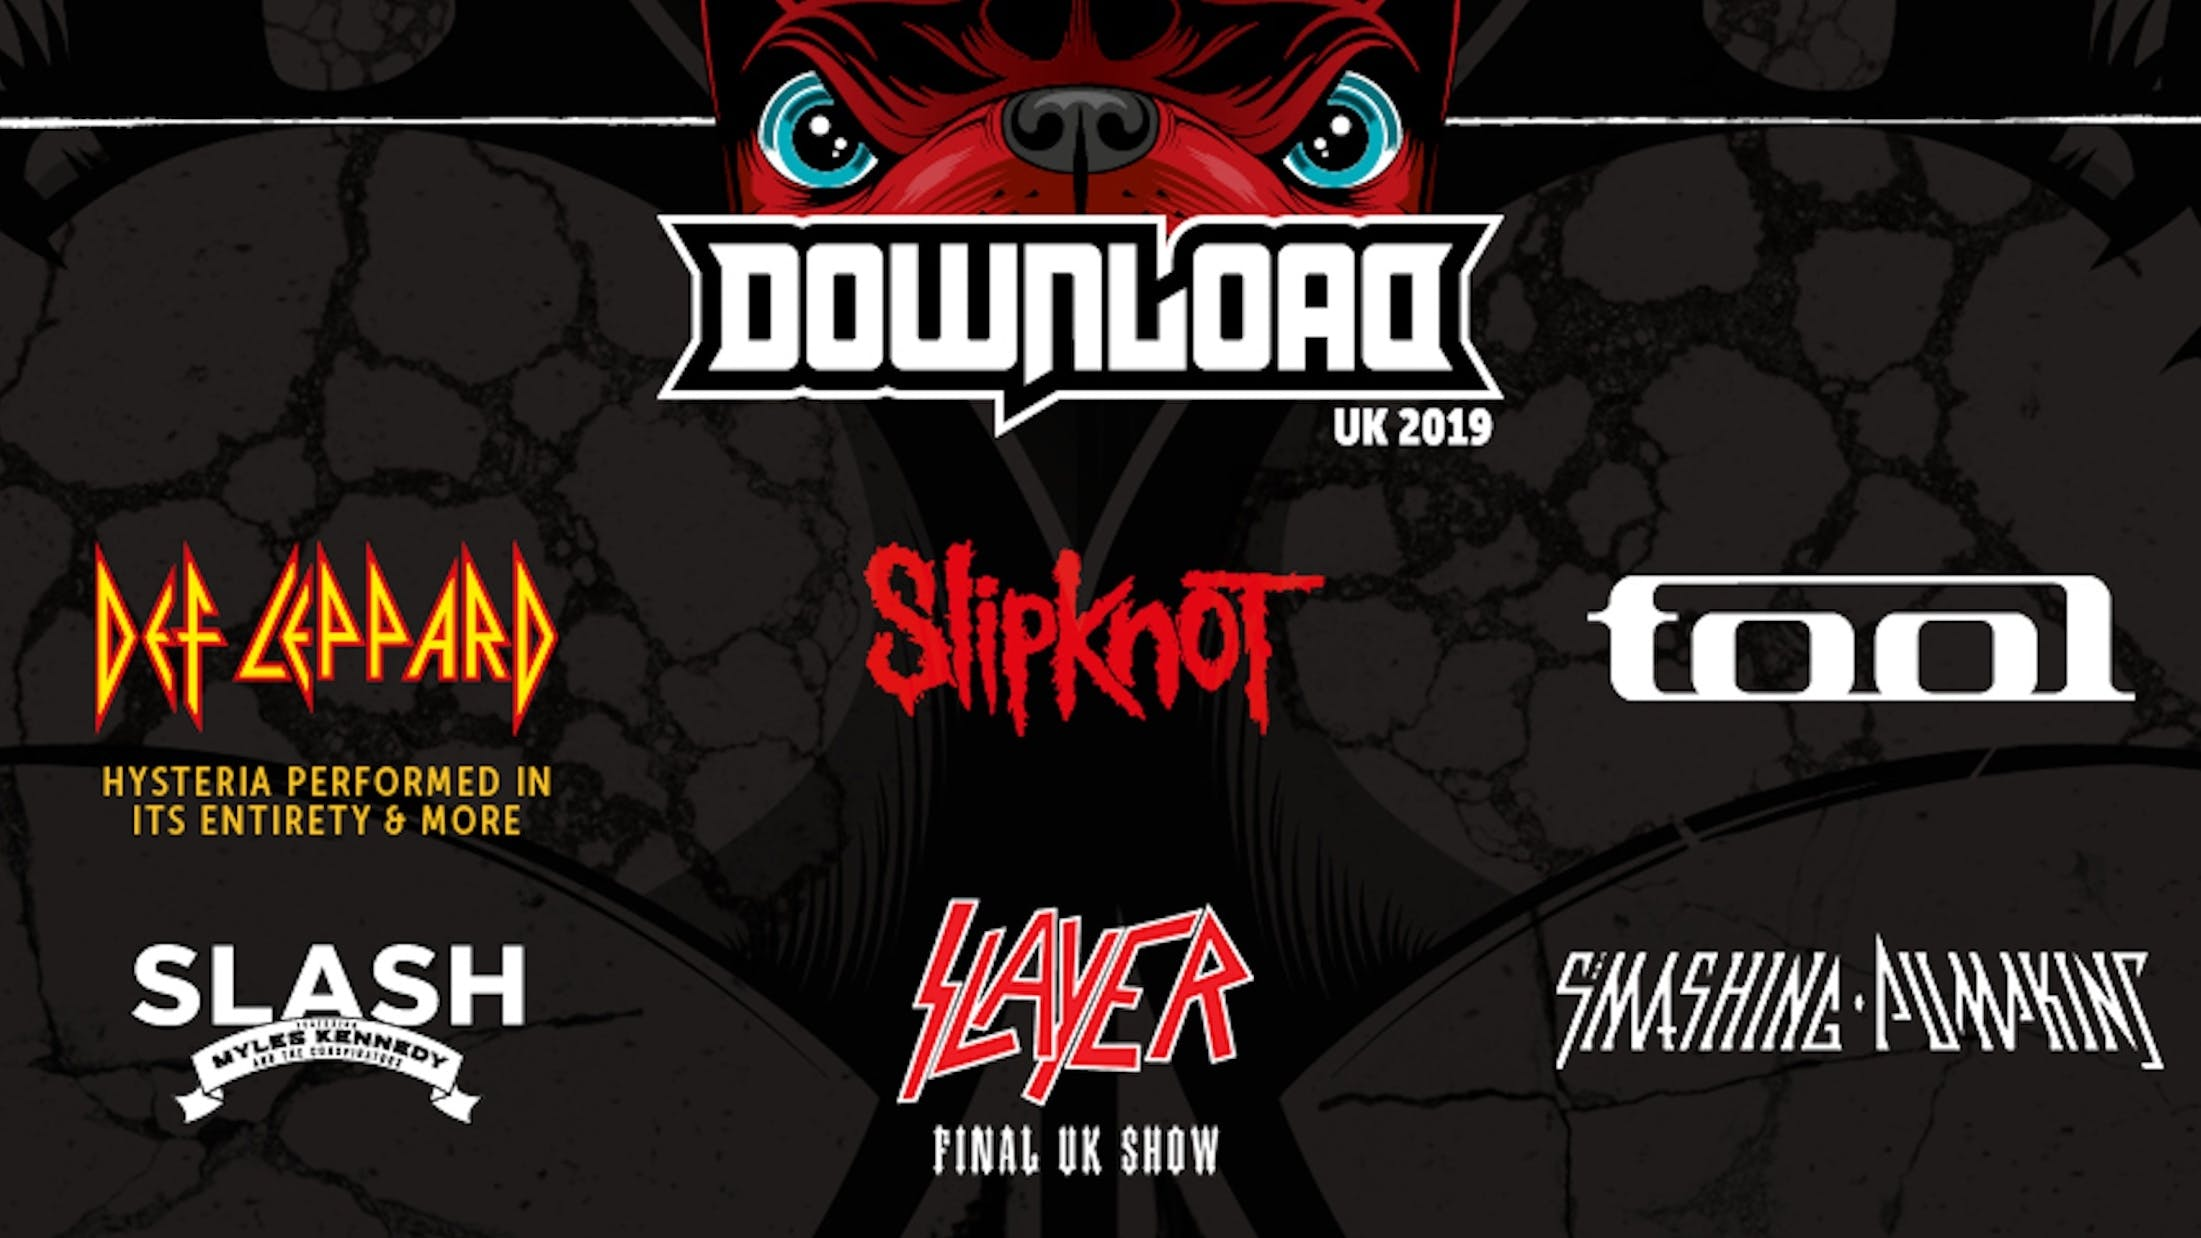 Download Festival Adds 23 More Bands To 2019 Bill!